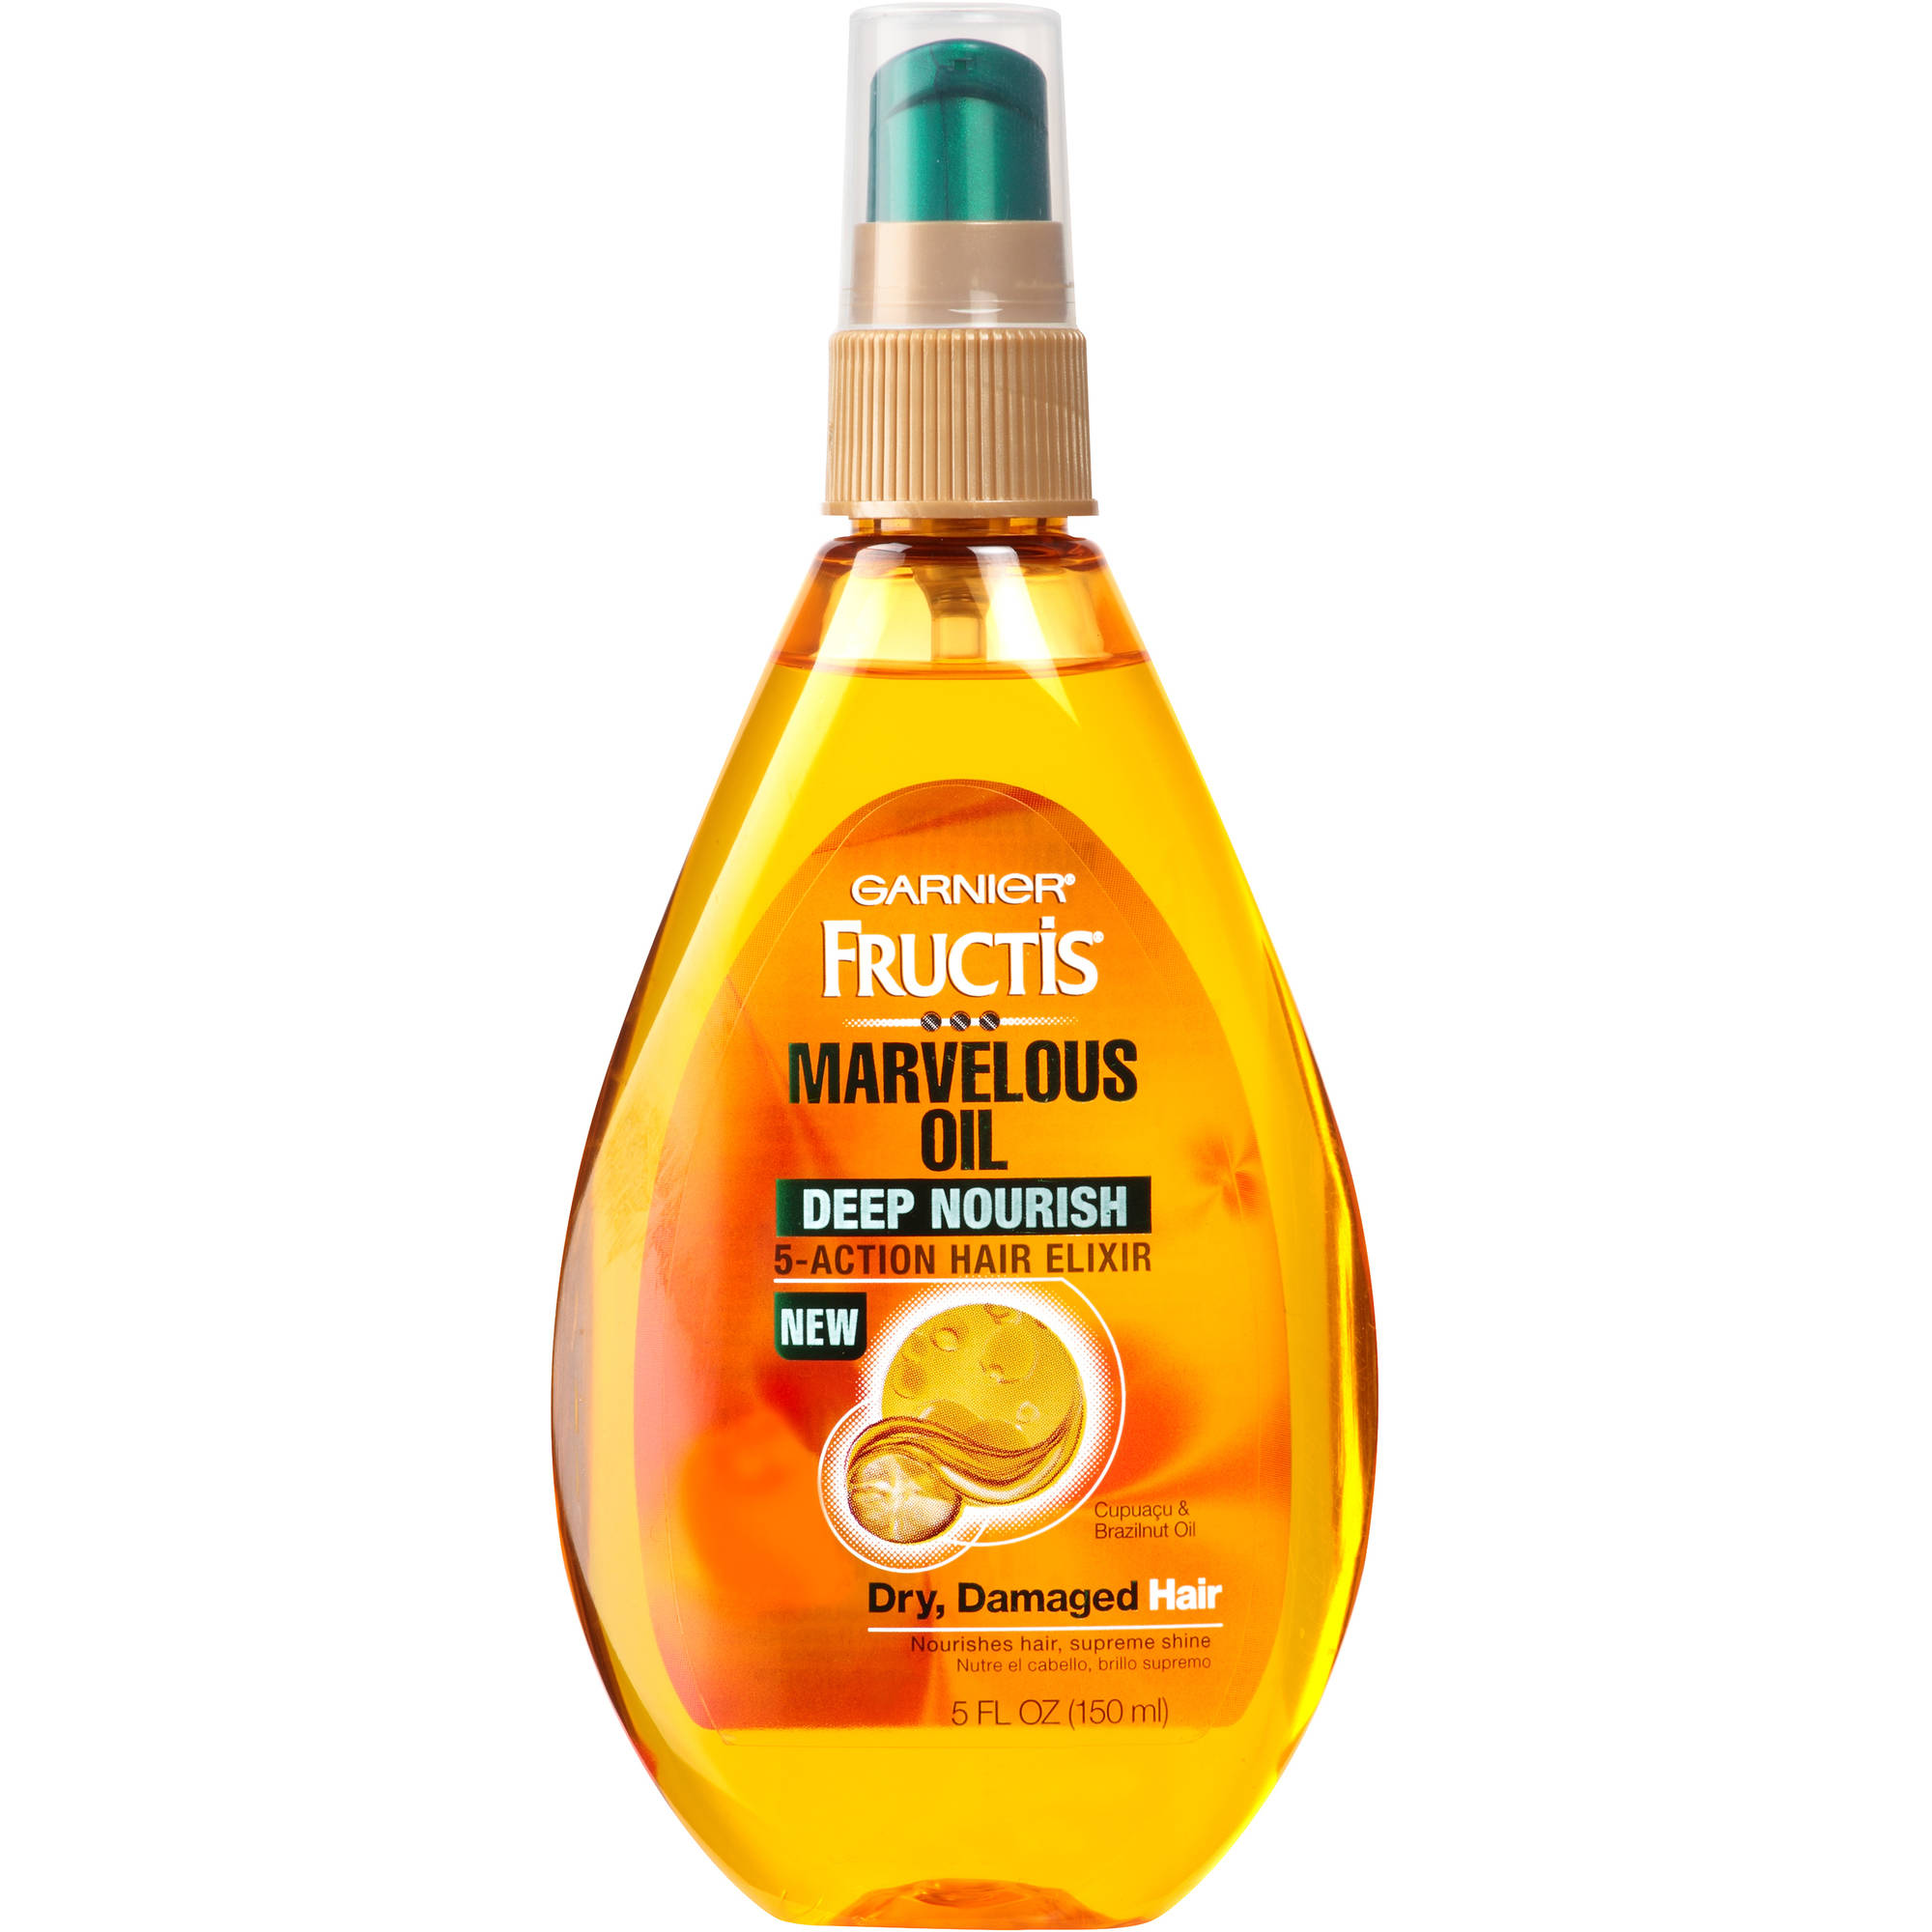 Garnier Fructis Marvelous Oil Deep Nourish 5-Action Hair Elixir, 5 fl oz